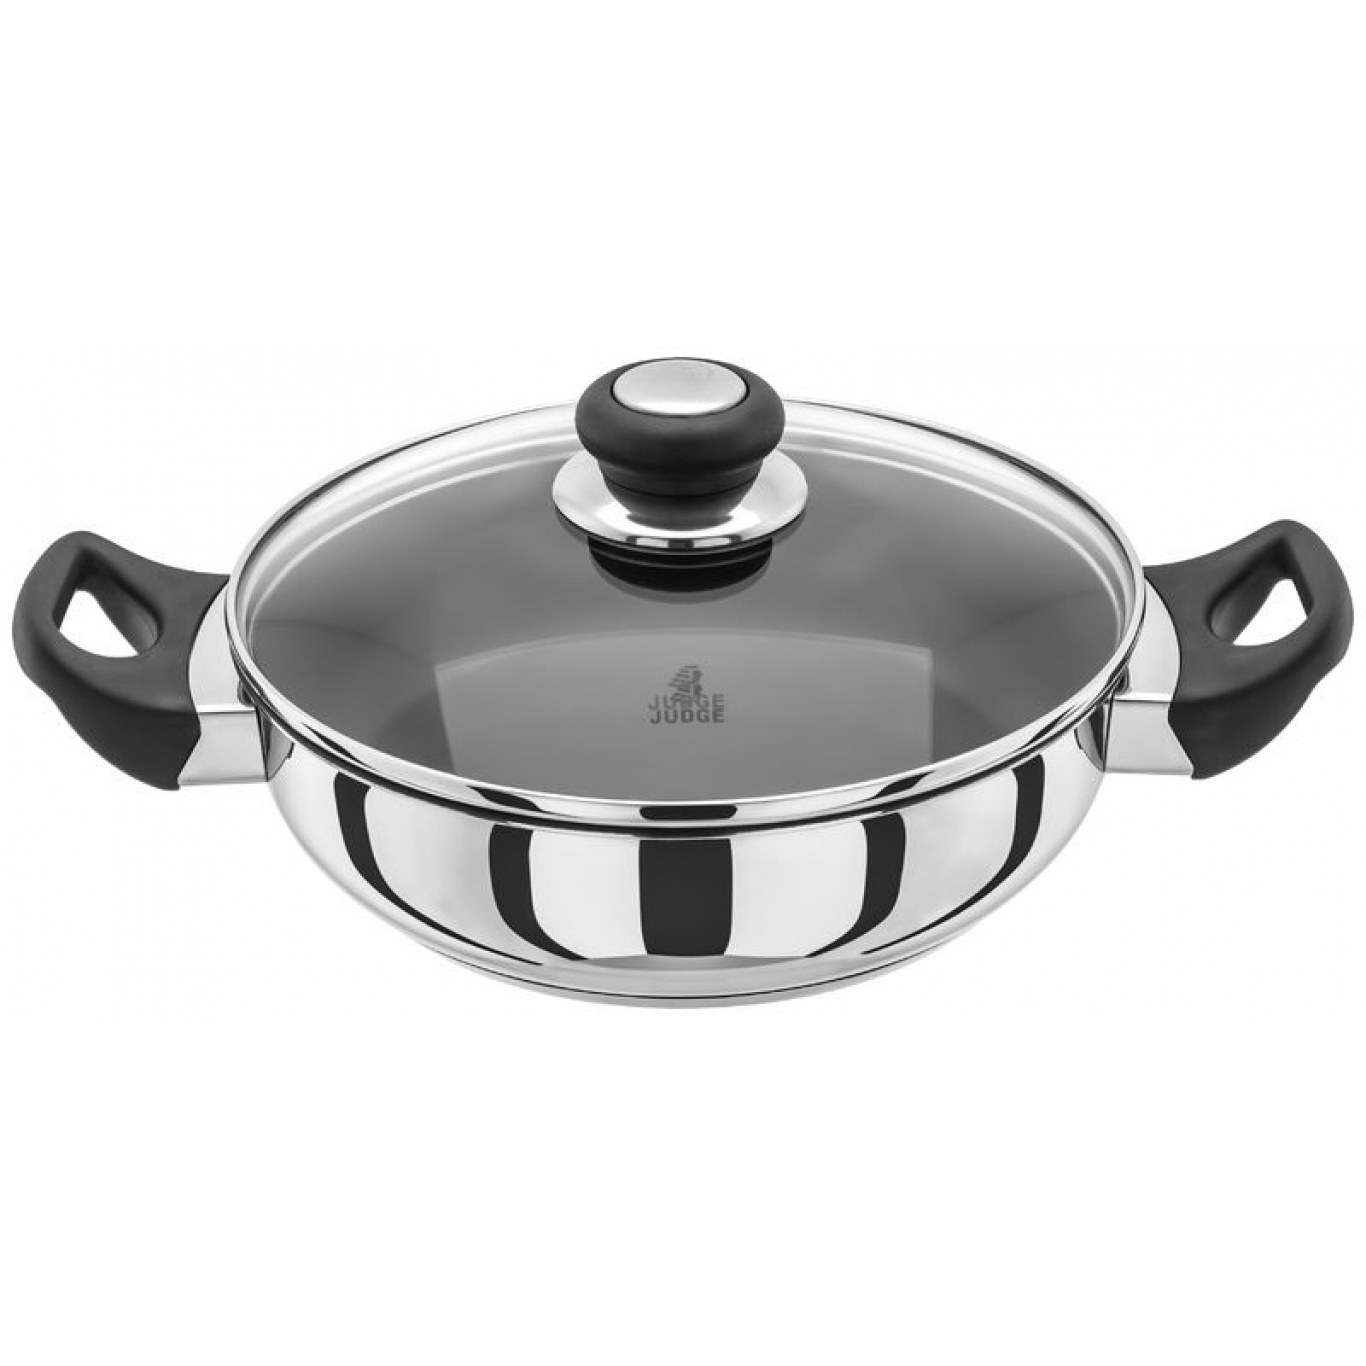 Image of Judge Vista 28cm Saute Pan & Lid